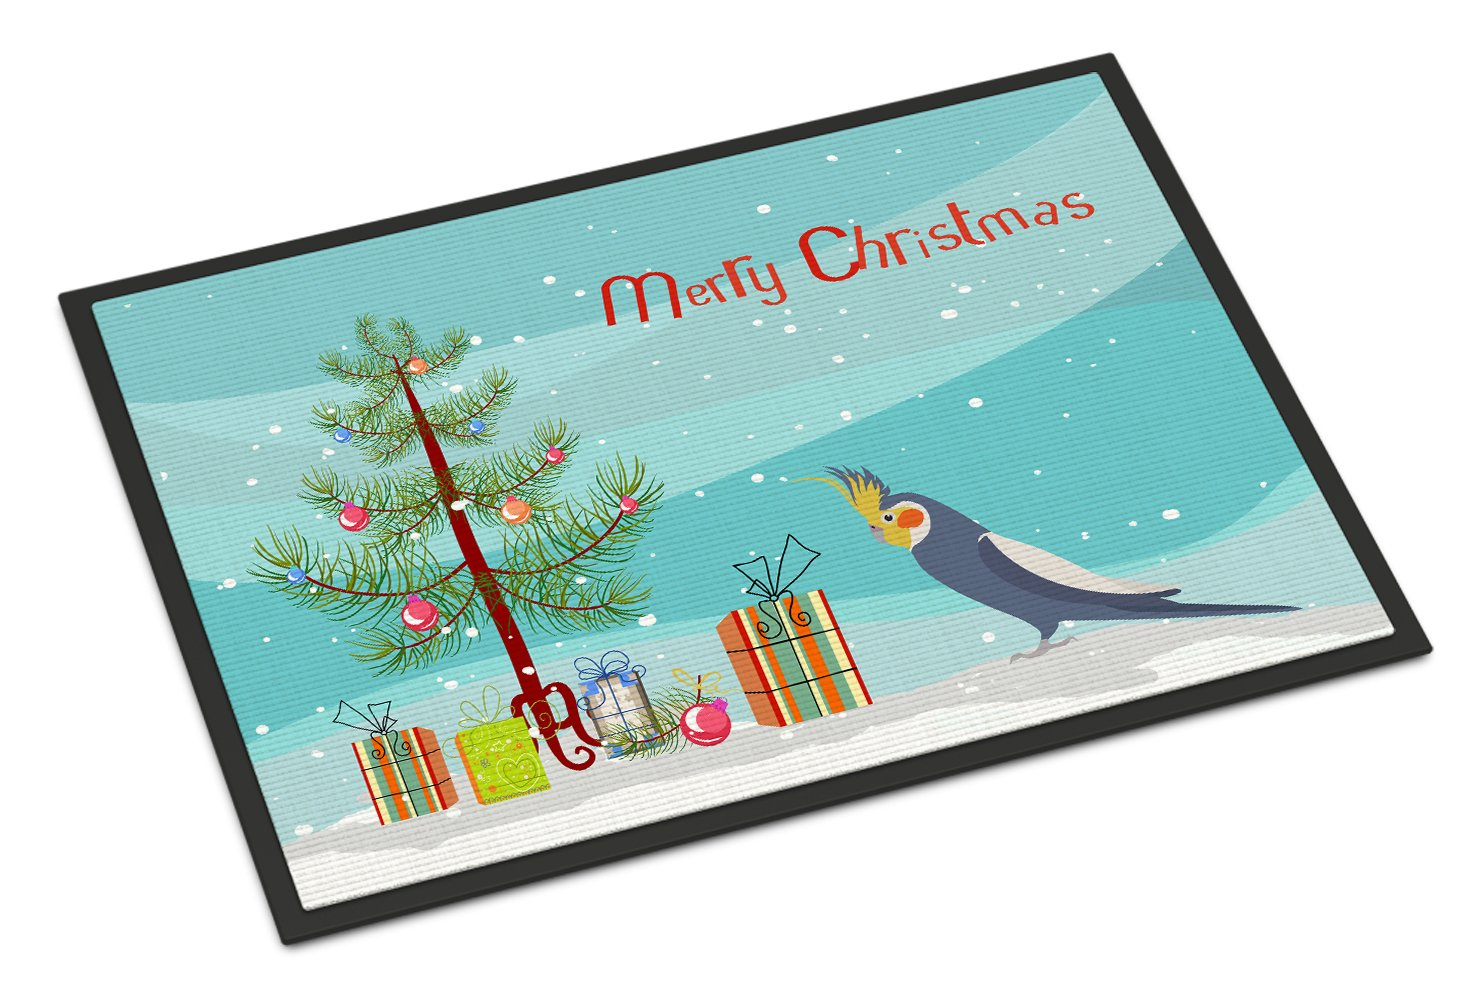 Cockatiel Merry Christmas Indoor or Outdoor Mat 24x36 CK4498JMAT by Caroline's Treasures